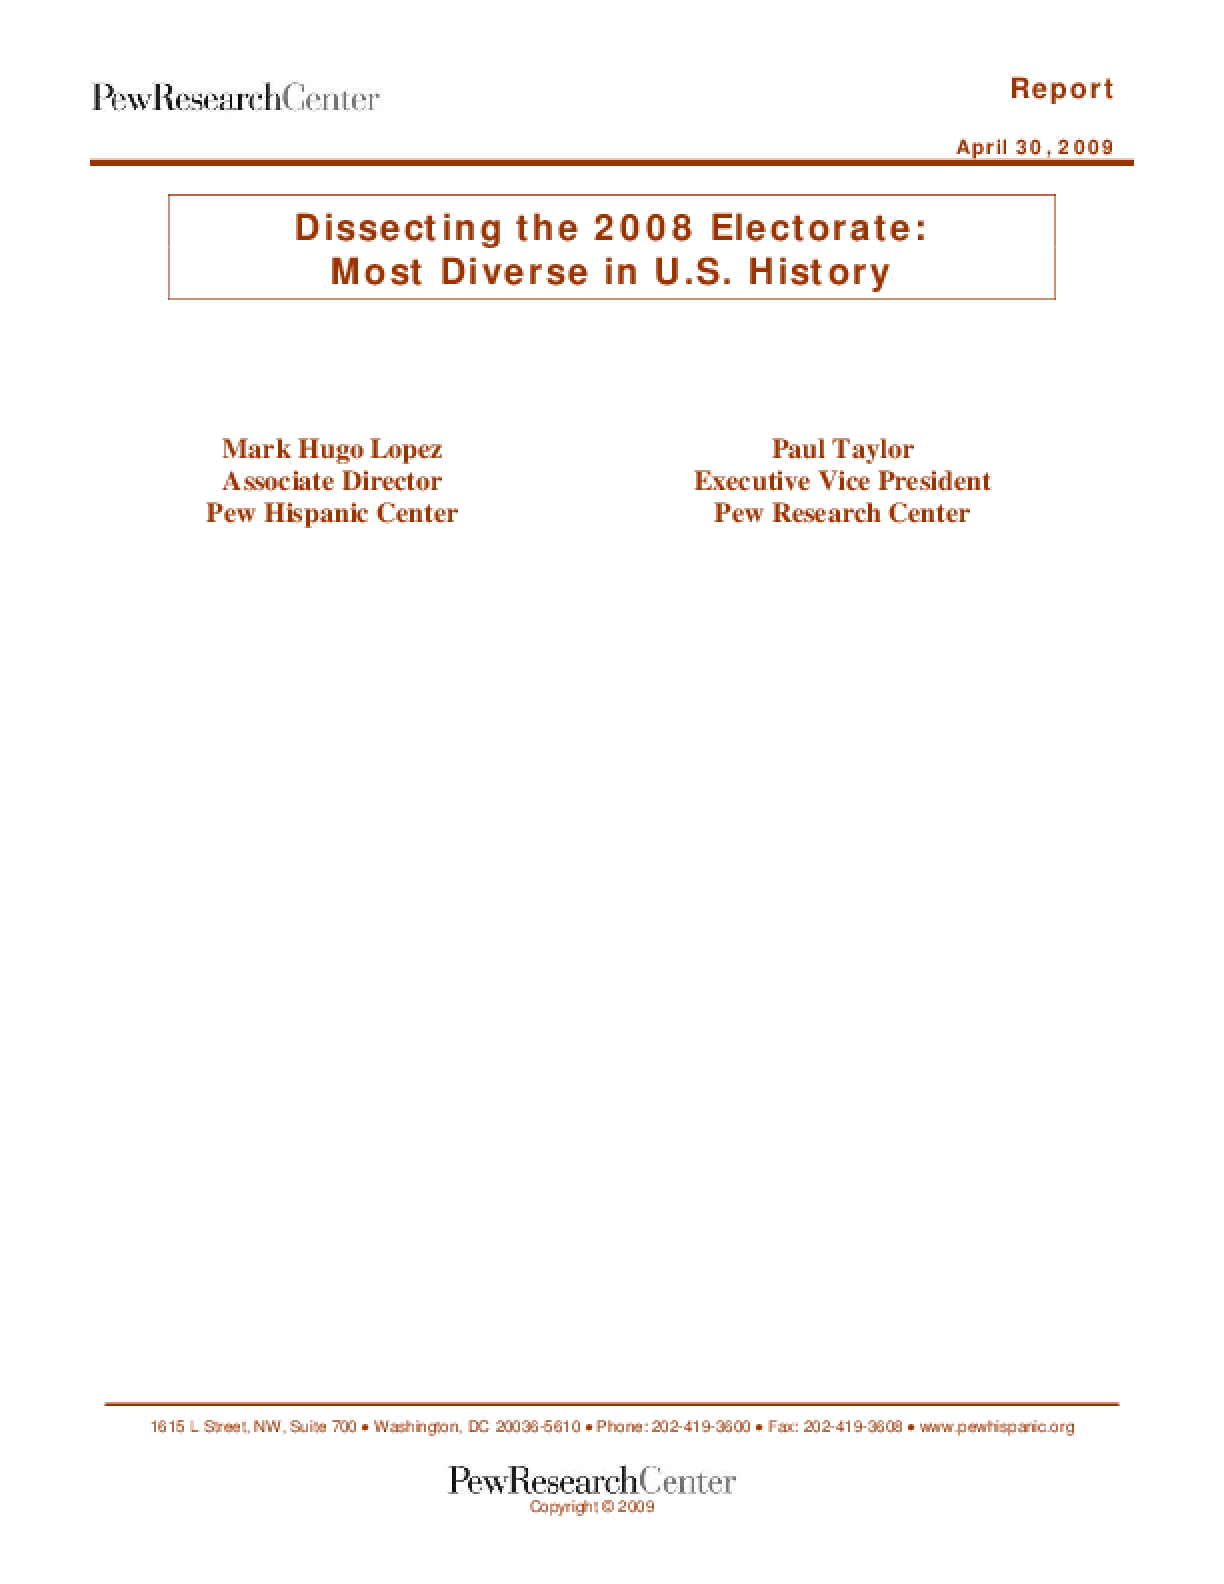 Dissecting the 2008 Electorate: Most Diverse in U.S. History